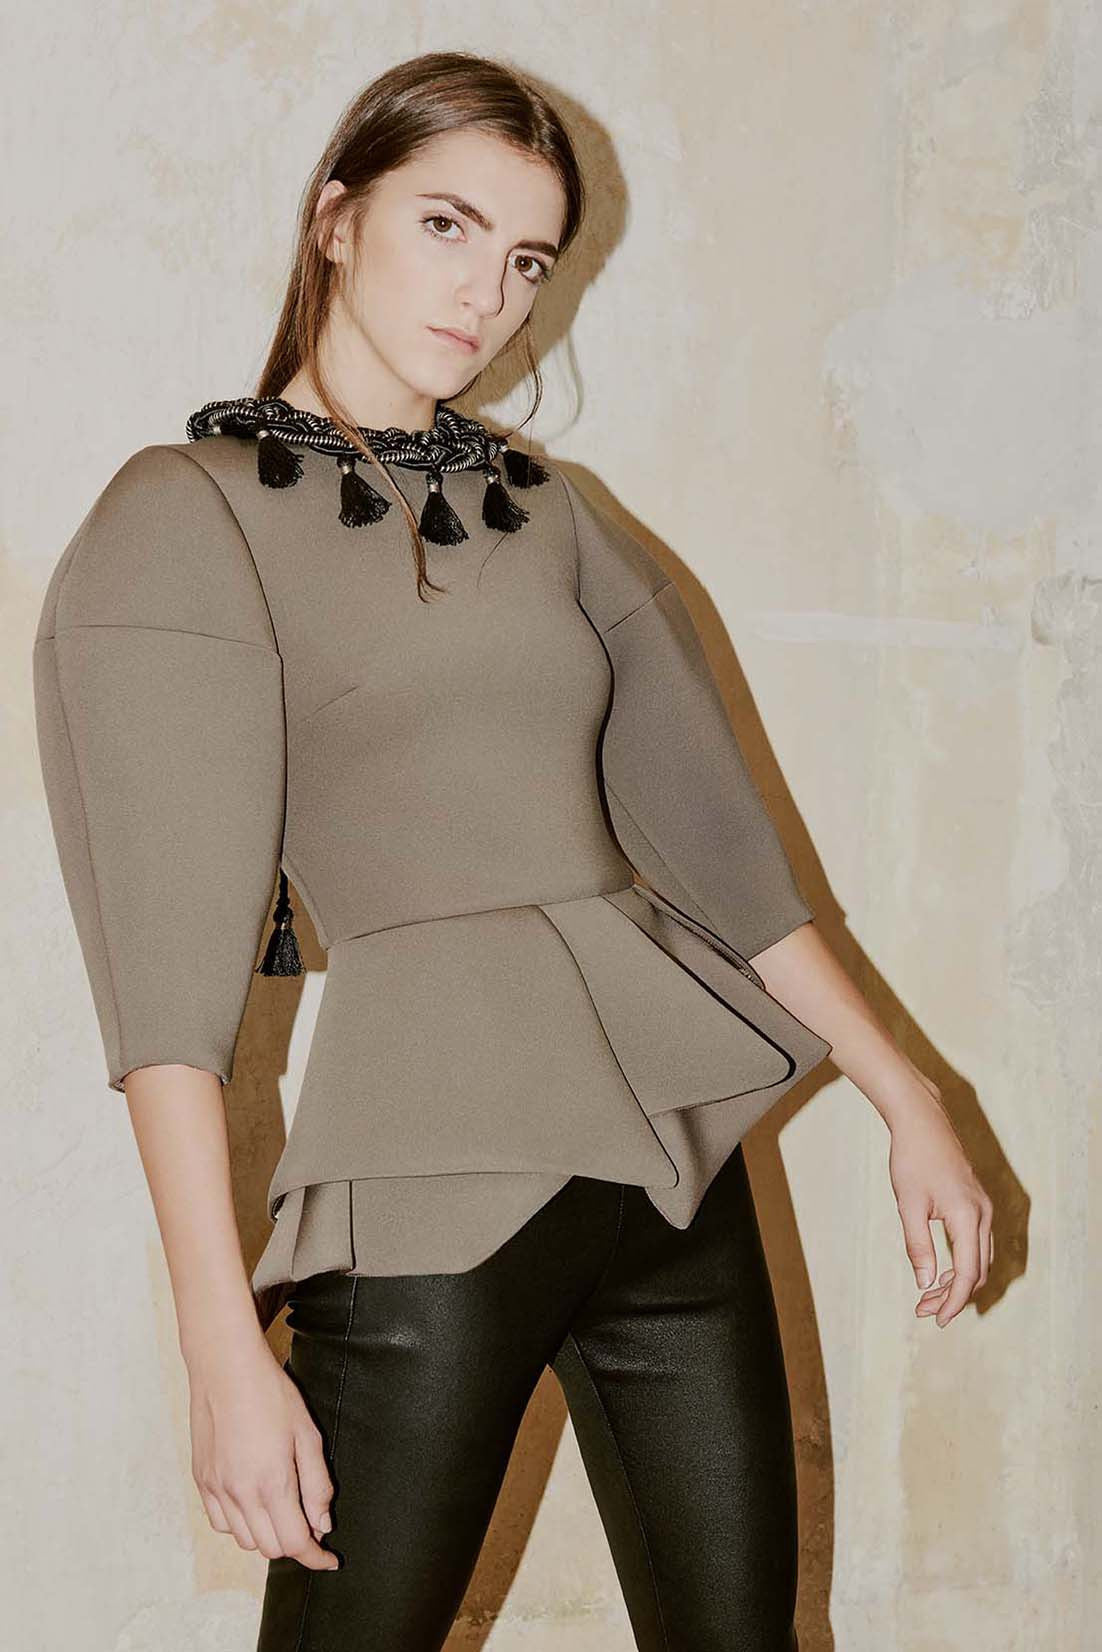 FERIDA dark moka neoprene peplum top